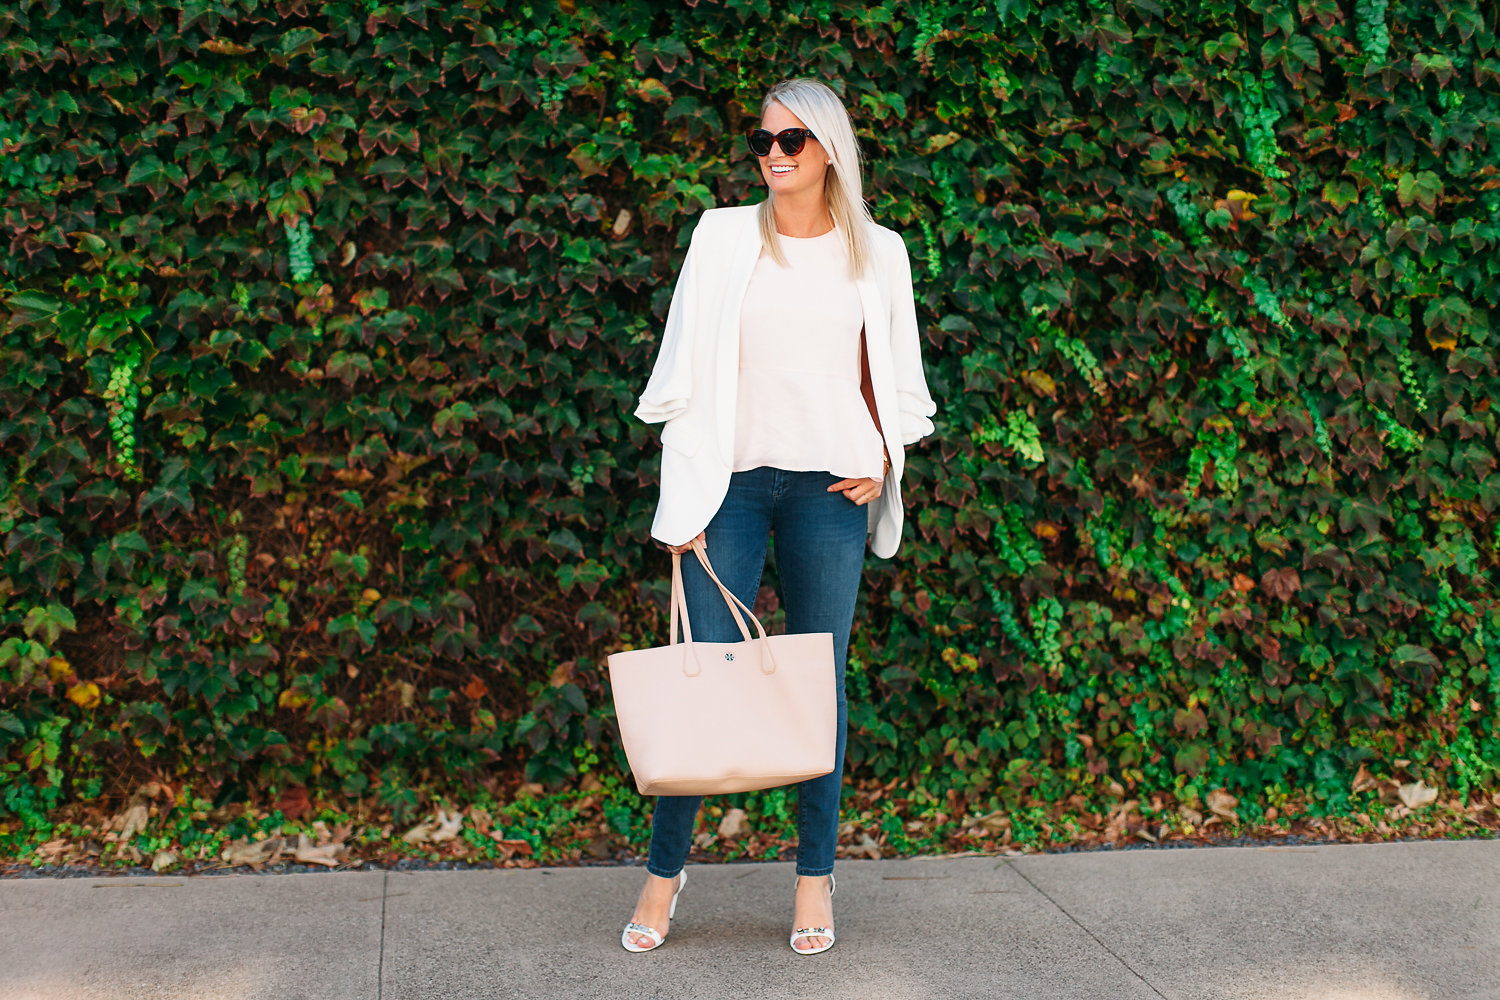 Club Monaco Seymour Top | The Style Scribe